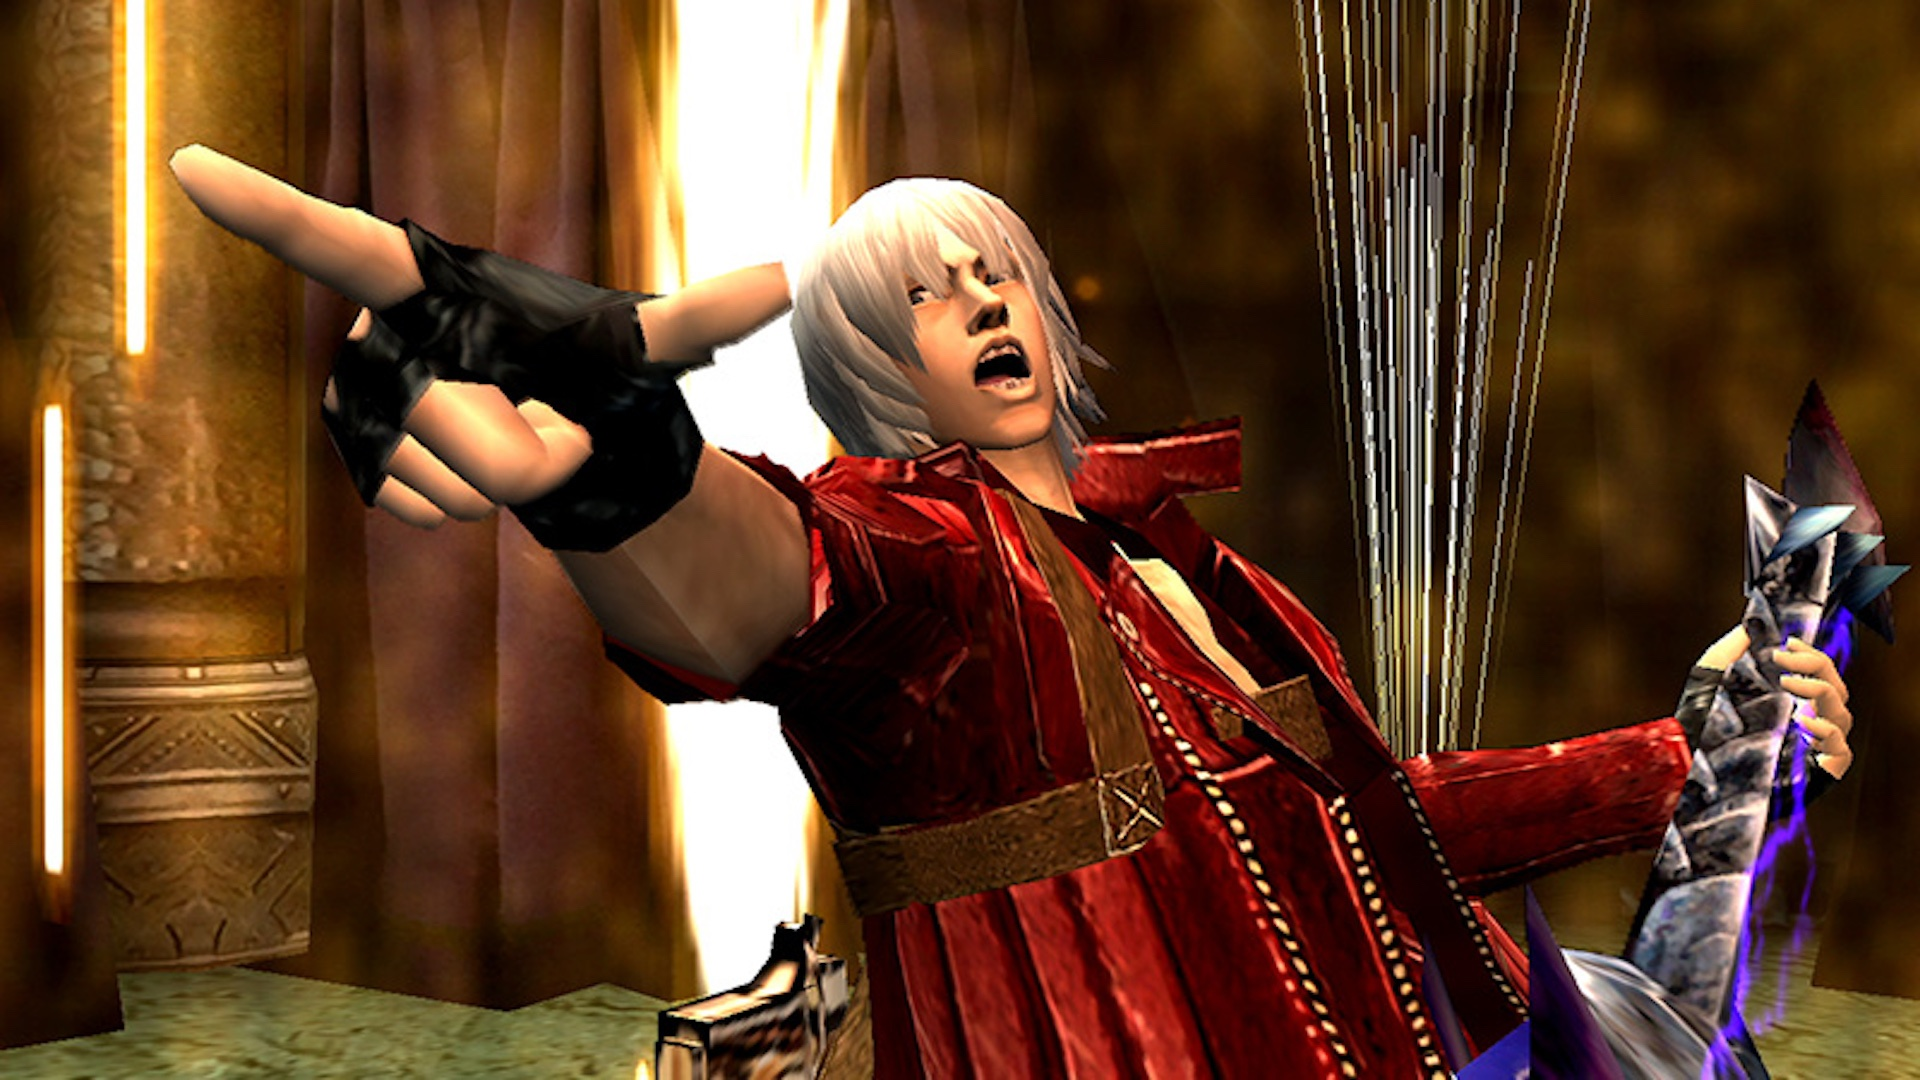 Devil May Cry 3 Special Edition slashes and guns its way onto Nintendo Switch - That VideoGame Blog